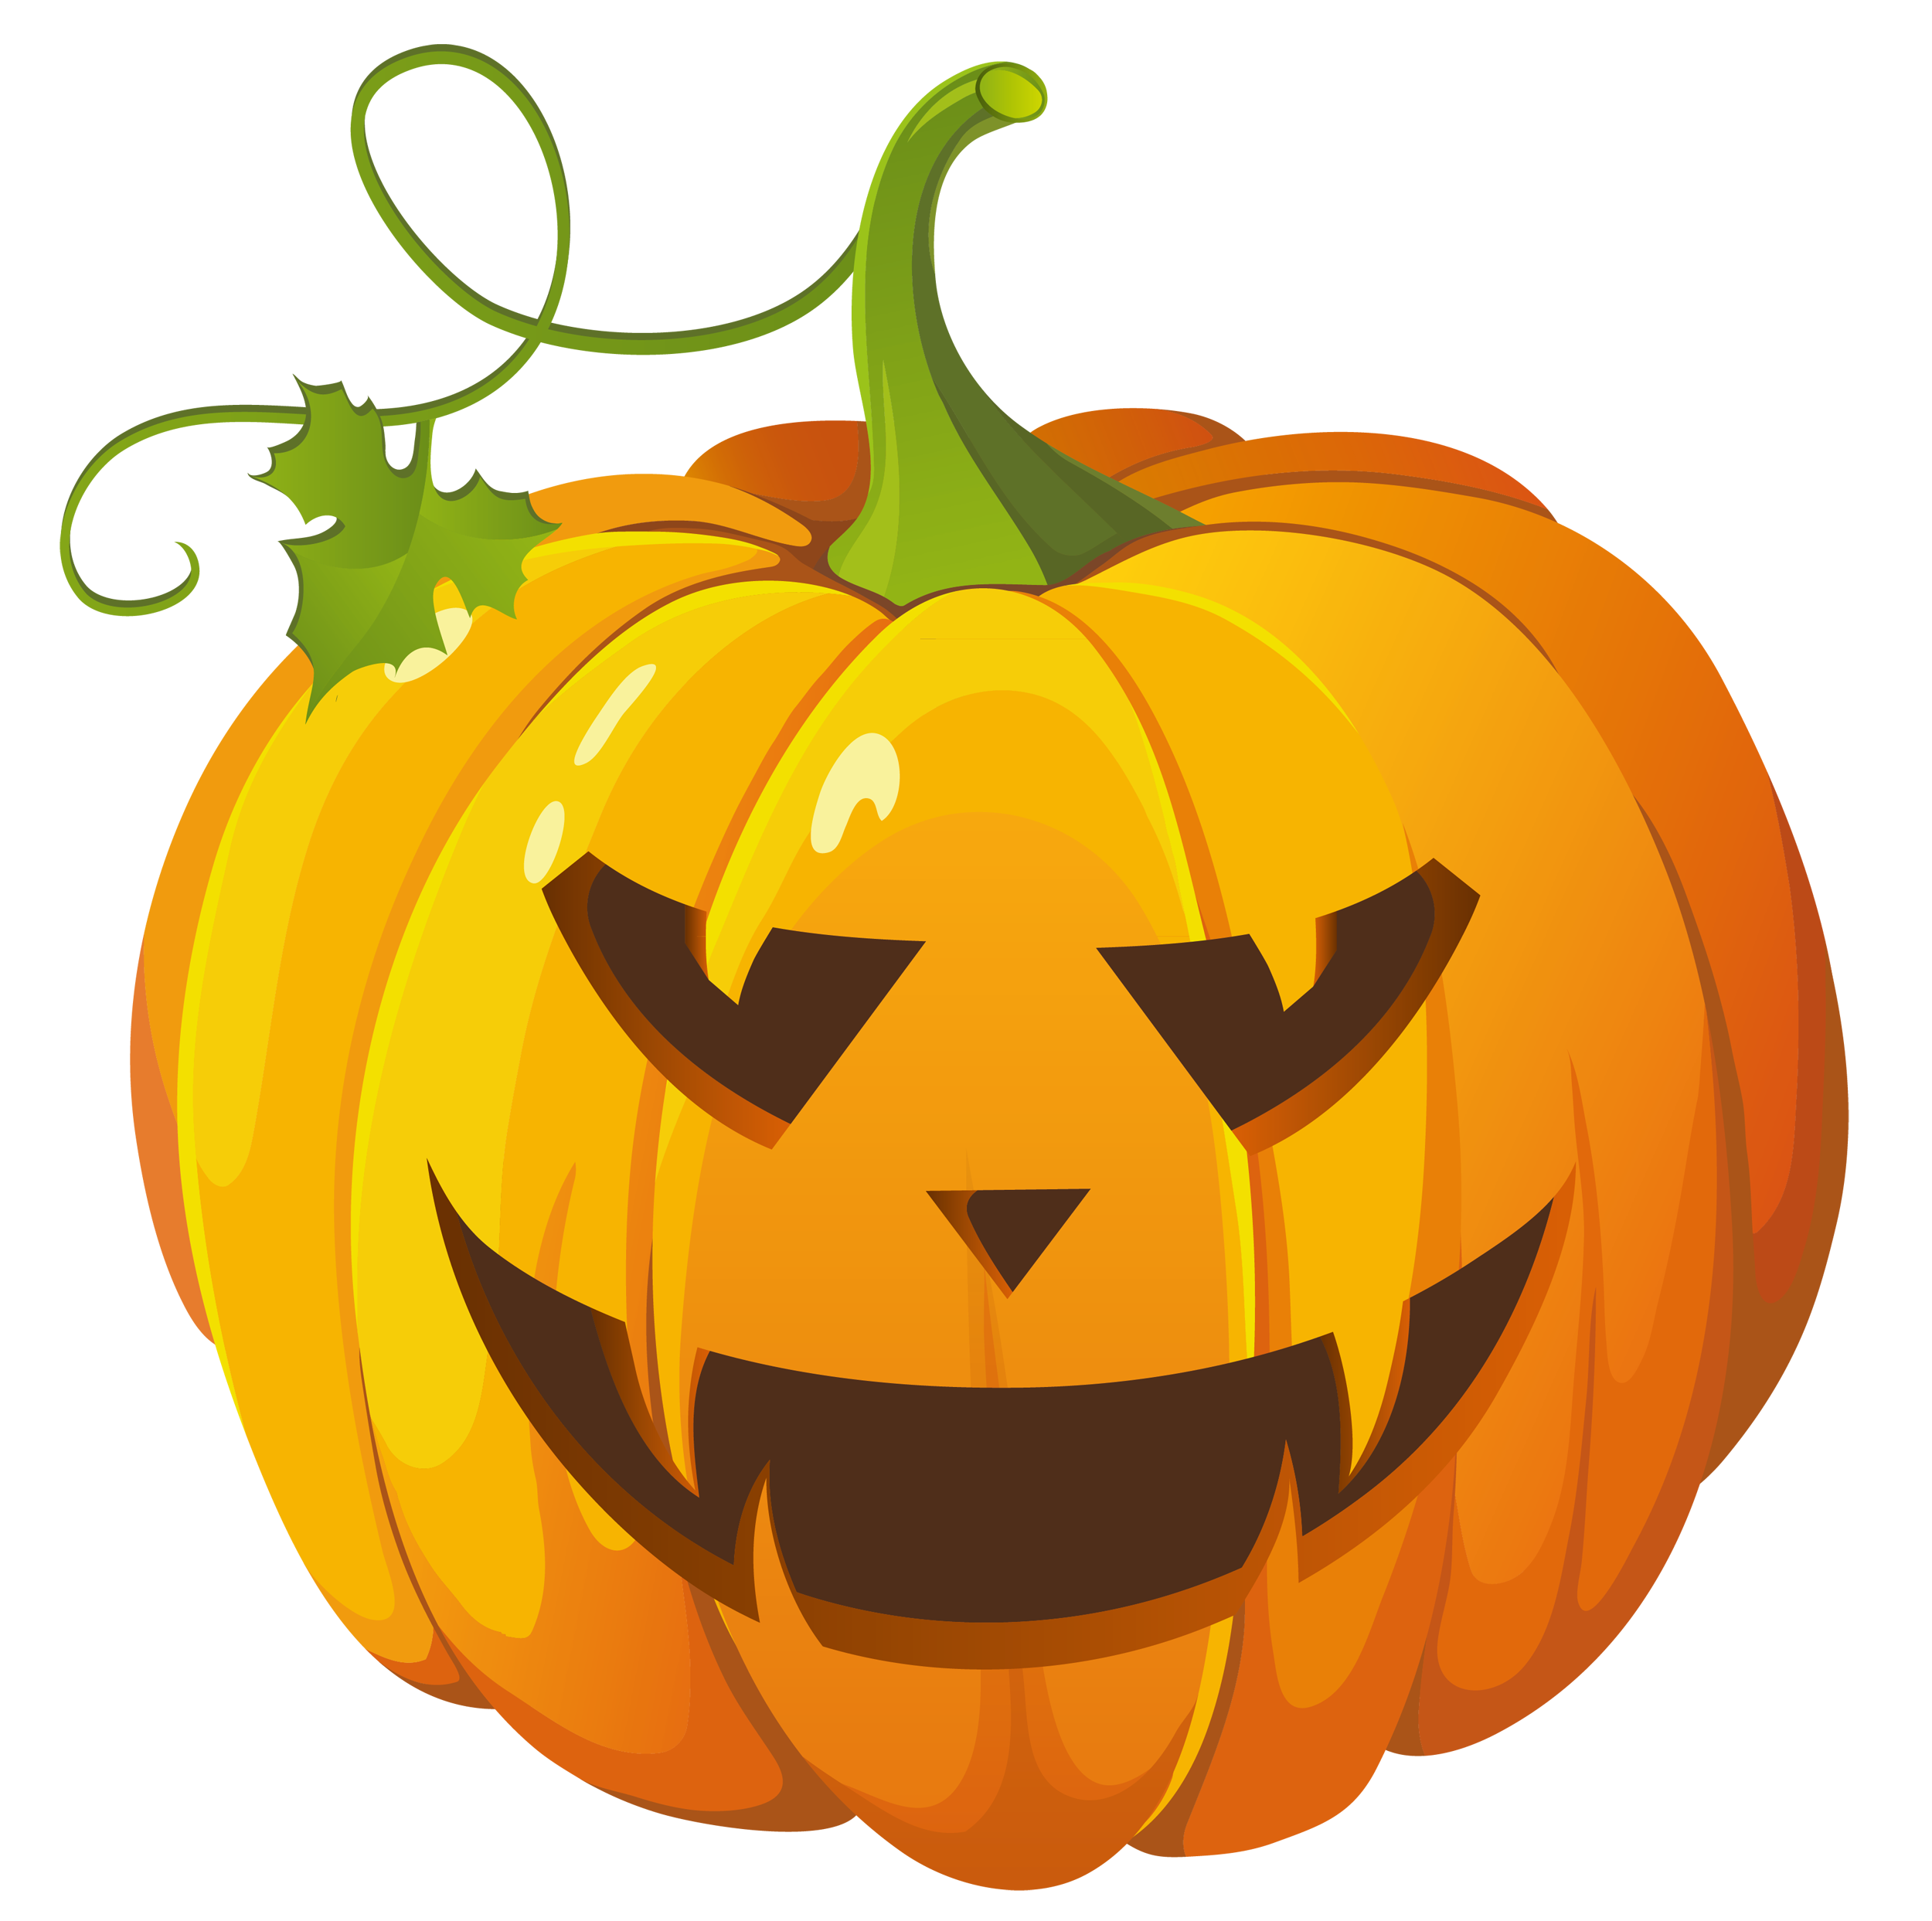 Pumpkin clipart #18, Download drawings